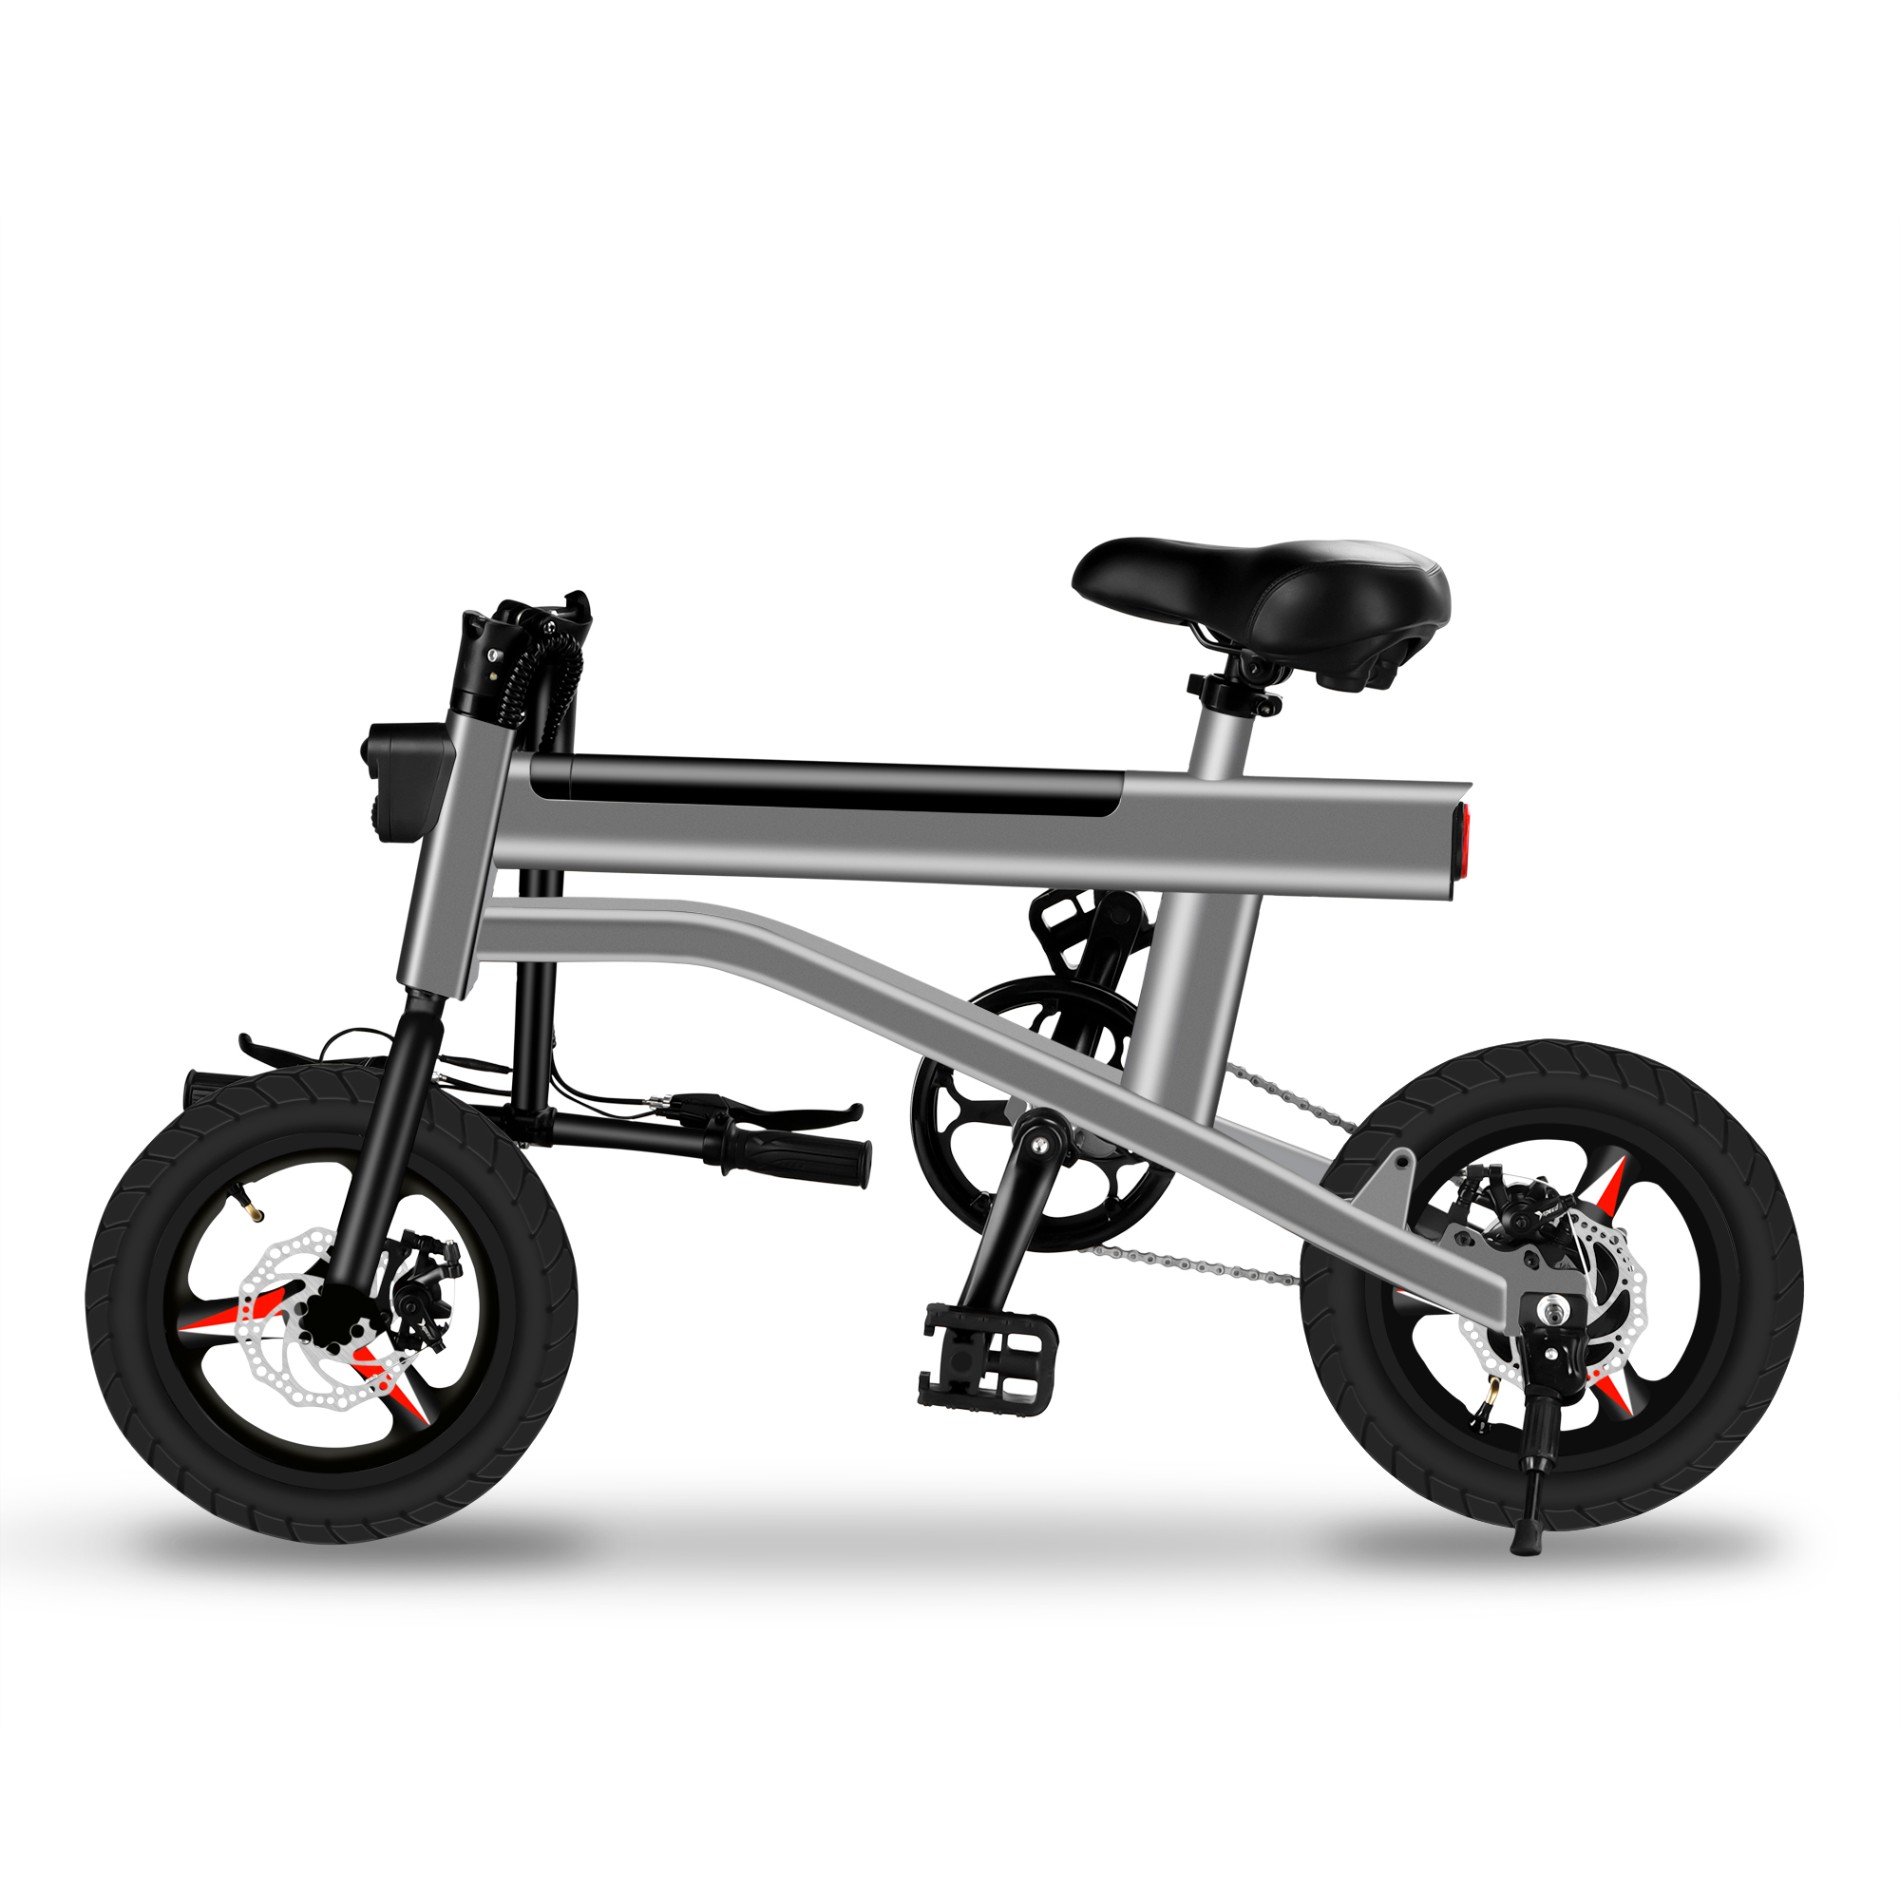 En15194 Mini Foldable Bike Fat Tire Folding Electric Bicycle Manufacturers, En15194 Mini Foldable Bike Fat Tire Folding Electric Bicycle Factory, Supply En15194 Mini Foldable Bike Fat Tire Folding Electric Bicycle